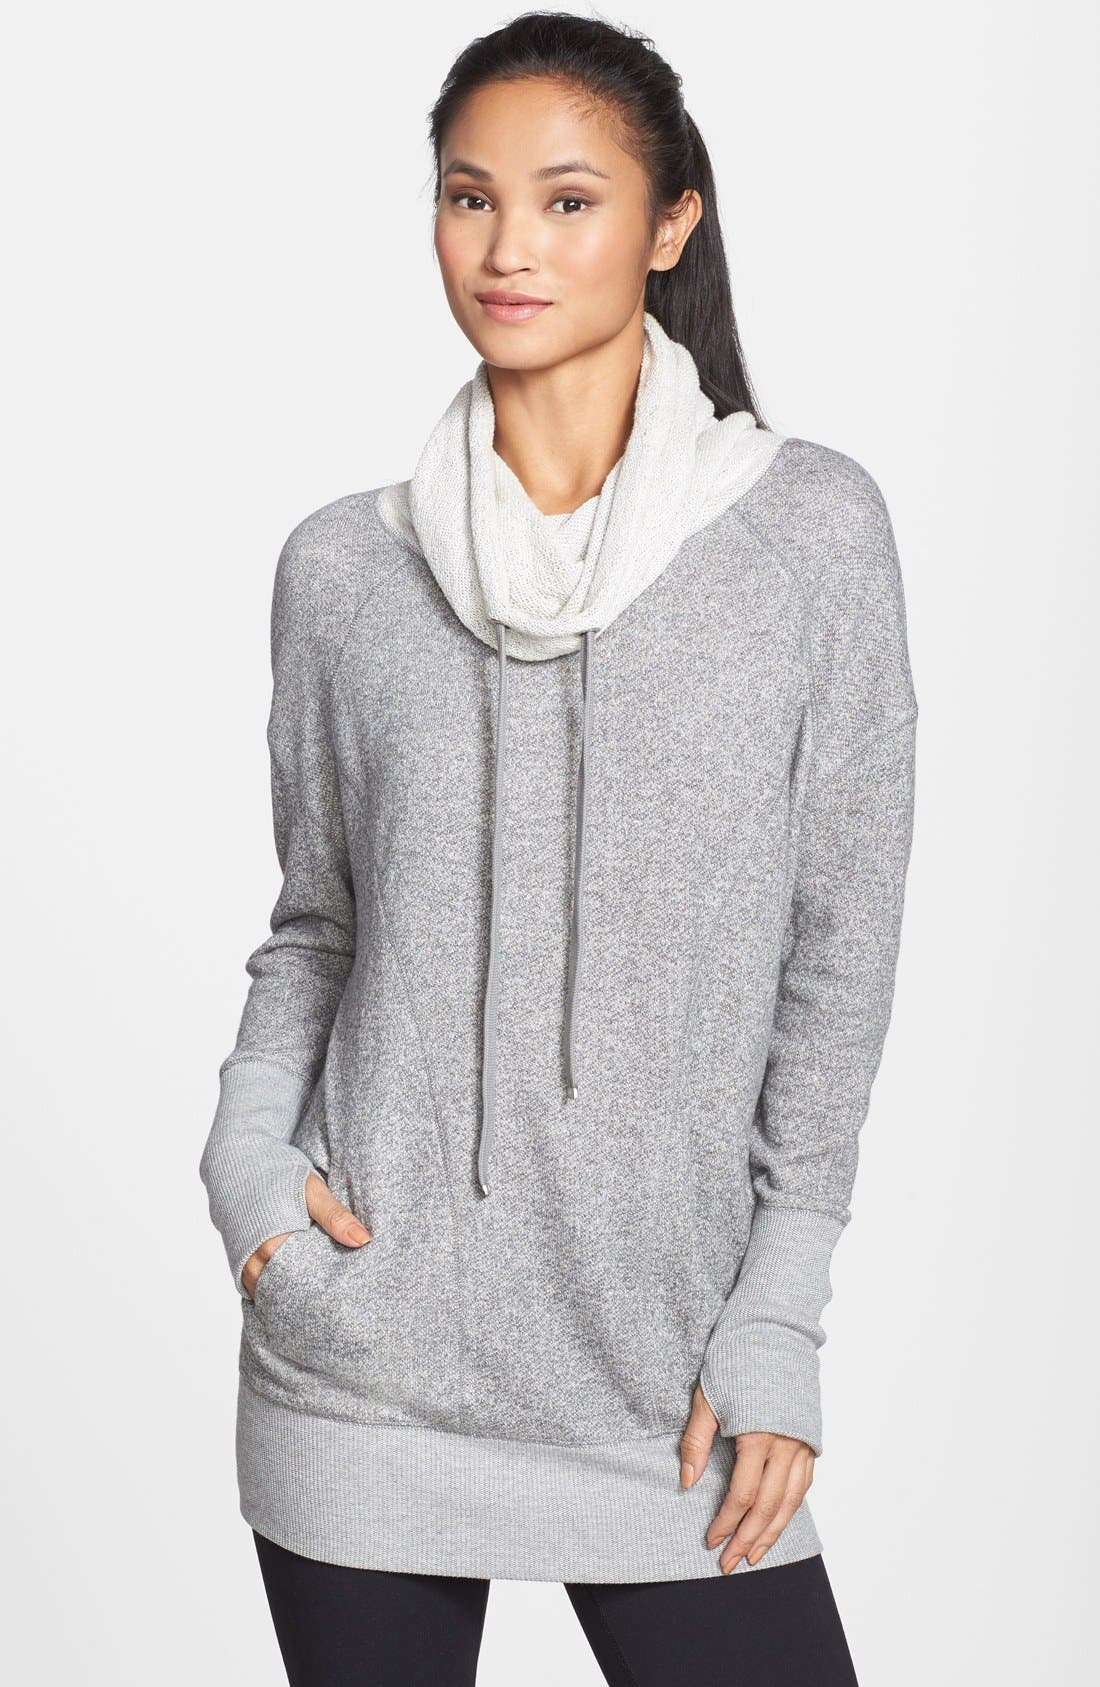 'Serenity' French Terry Sweatshirt,                             Main thumbnail 1, color,                             Grey Monument Heather